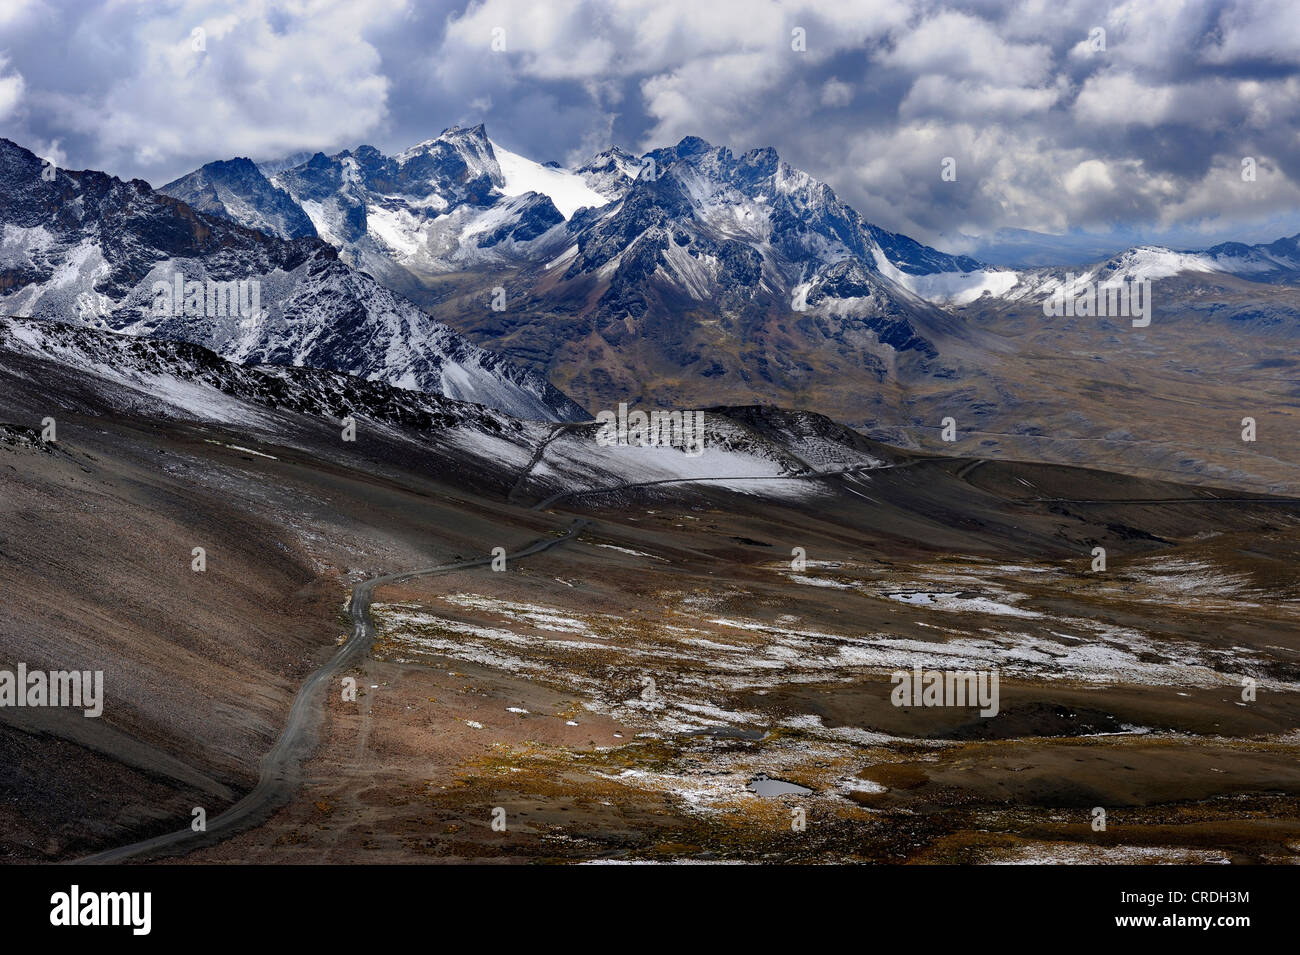 High mountain road with the Andes Mountains, La Paz, Bolivia, South America - Stock Image